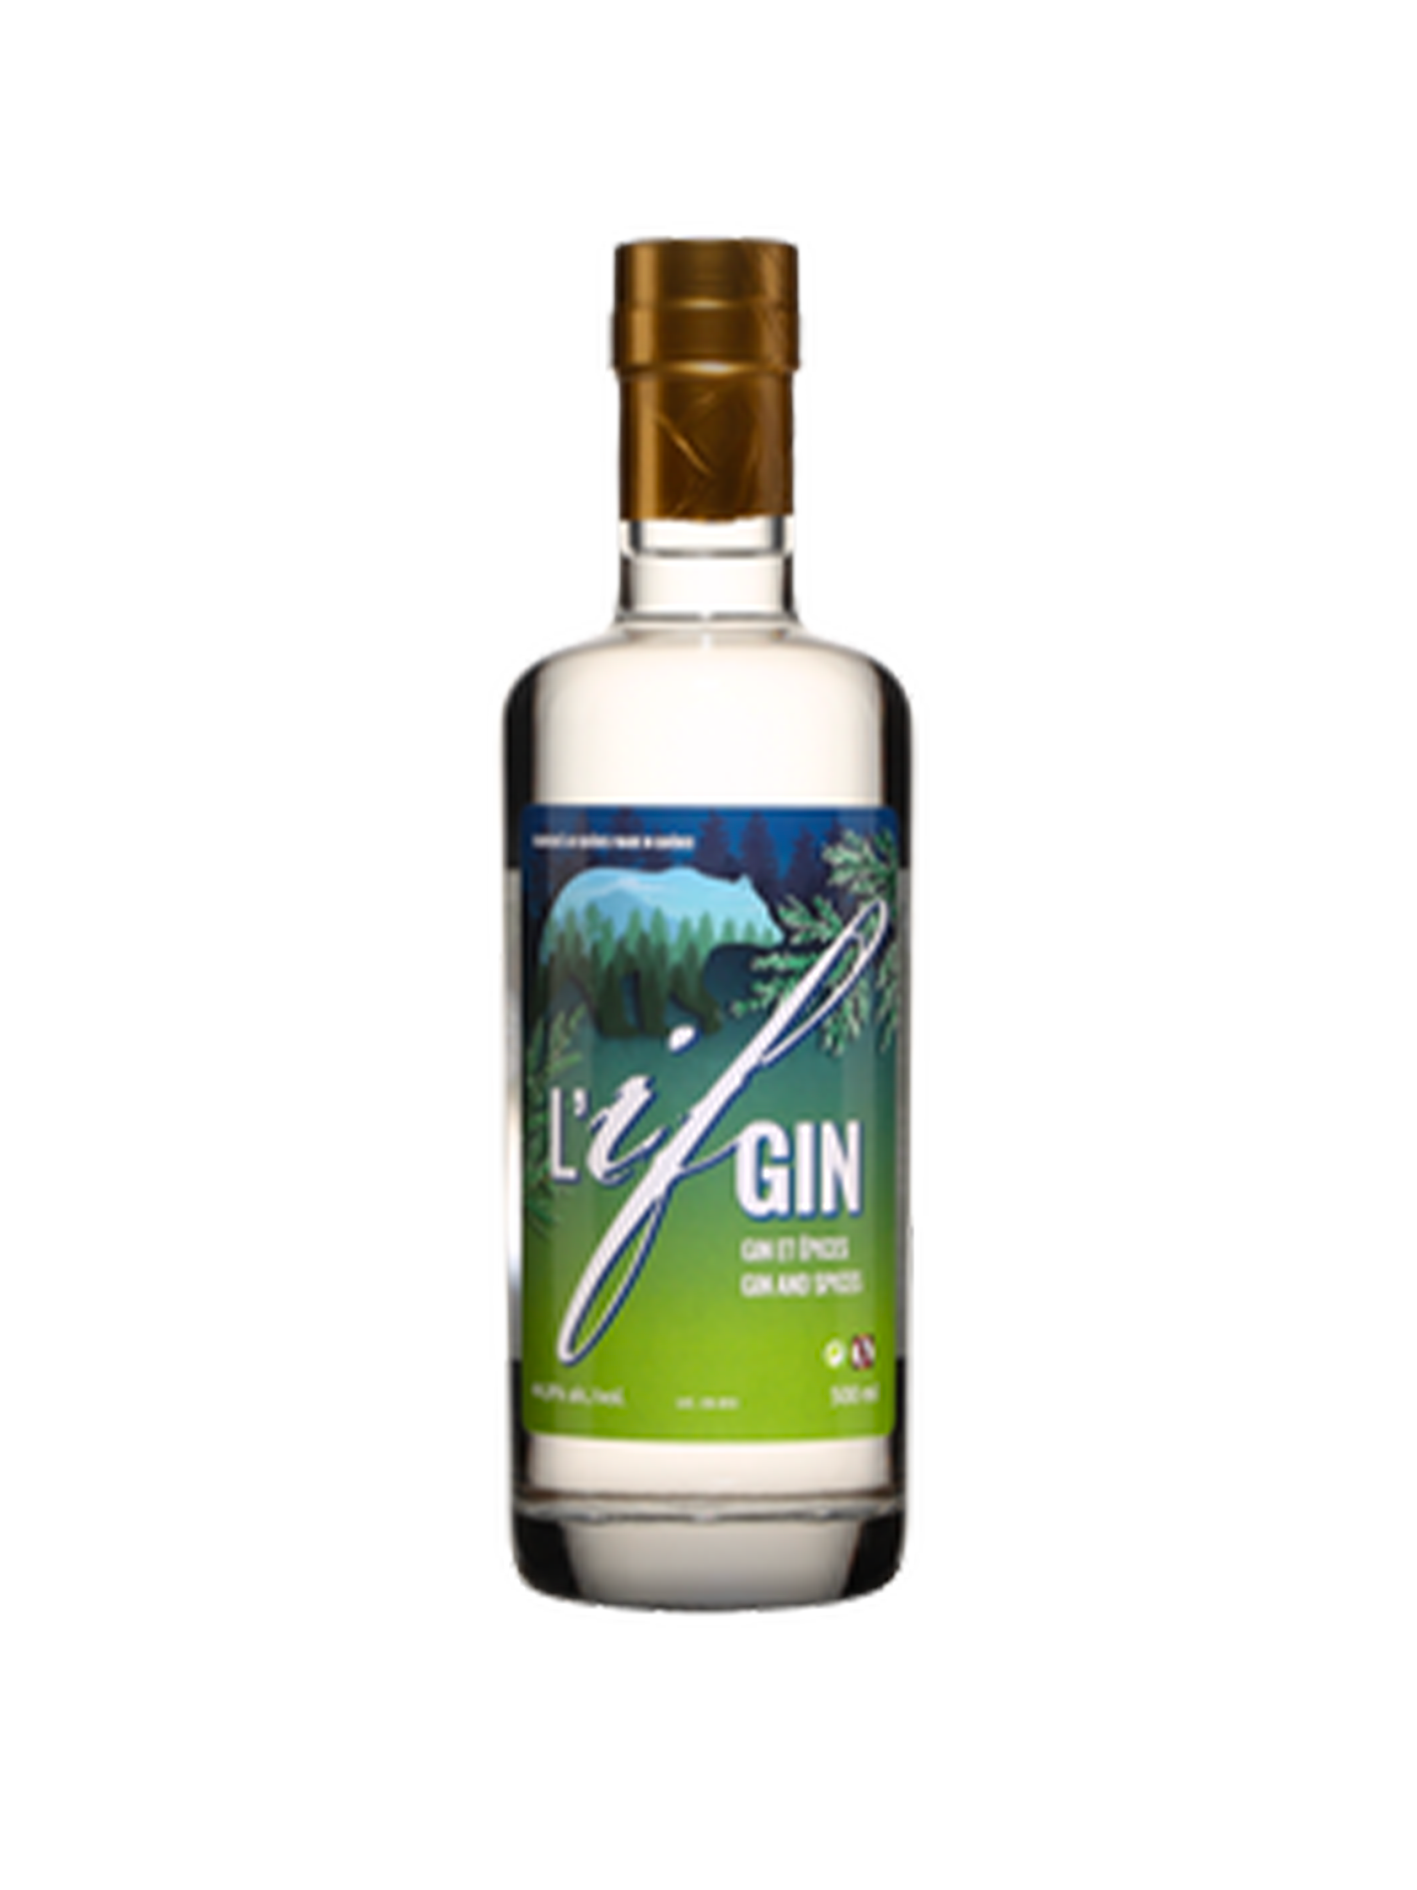 IF GIN EPICE